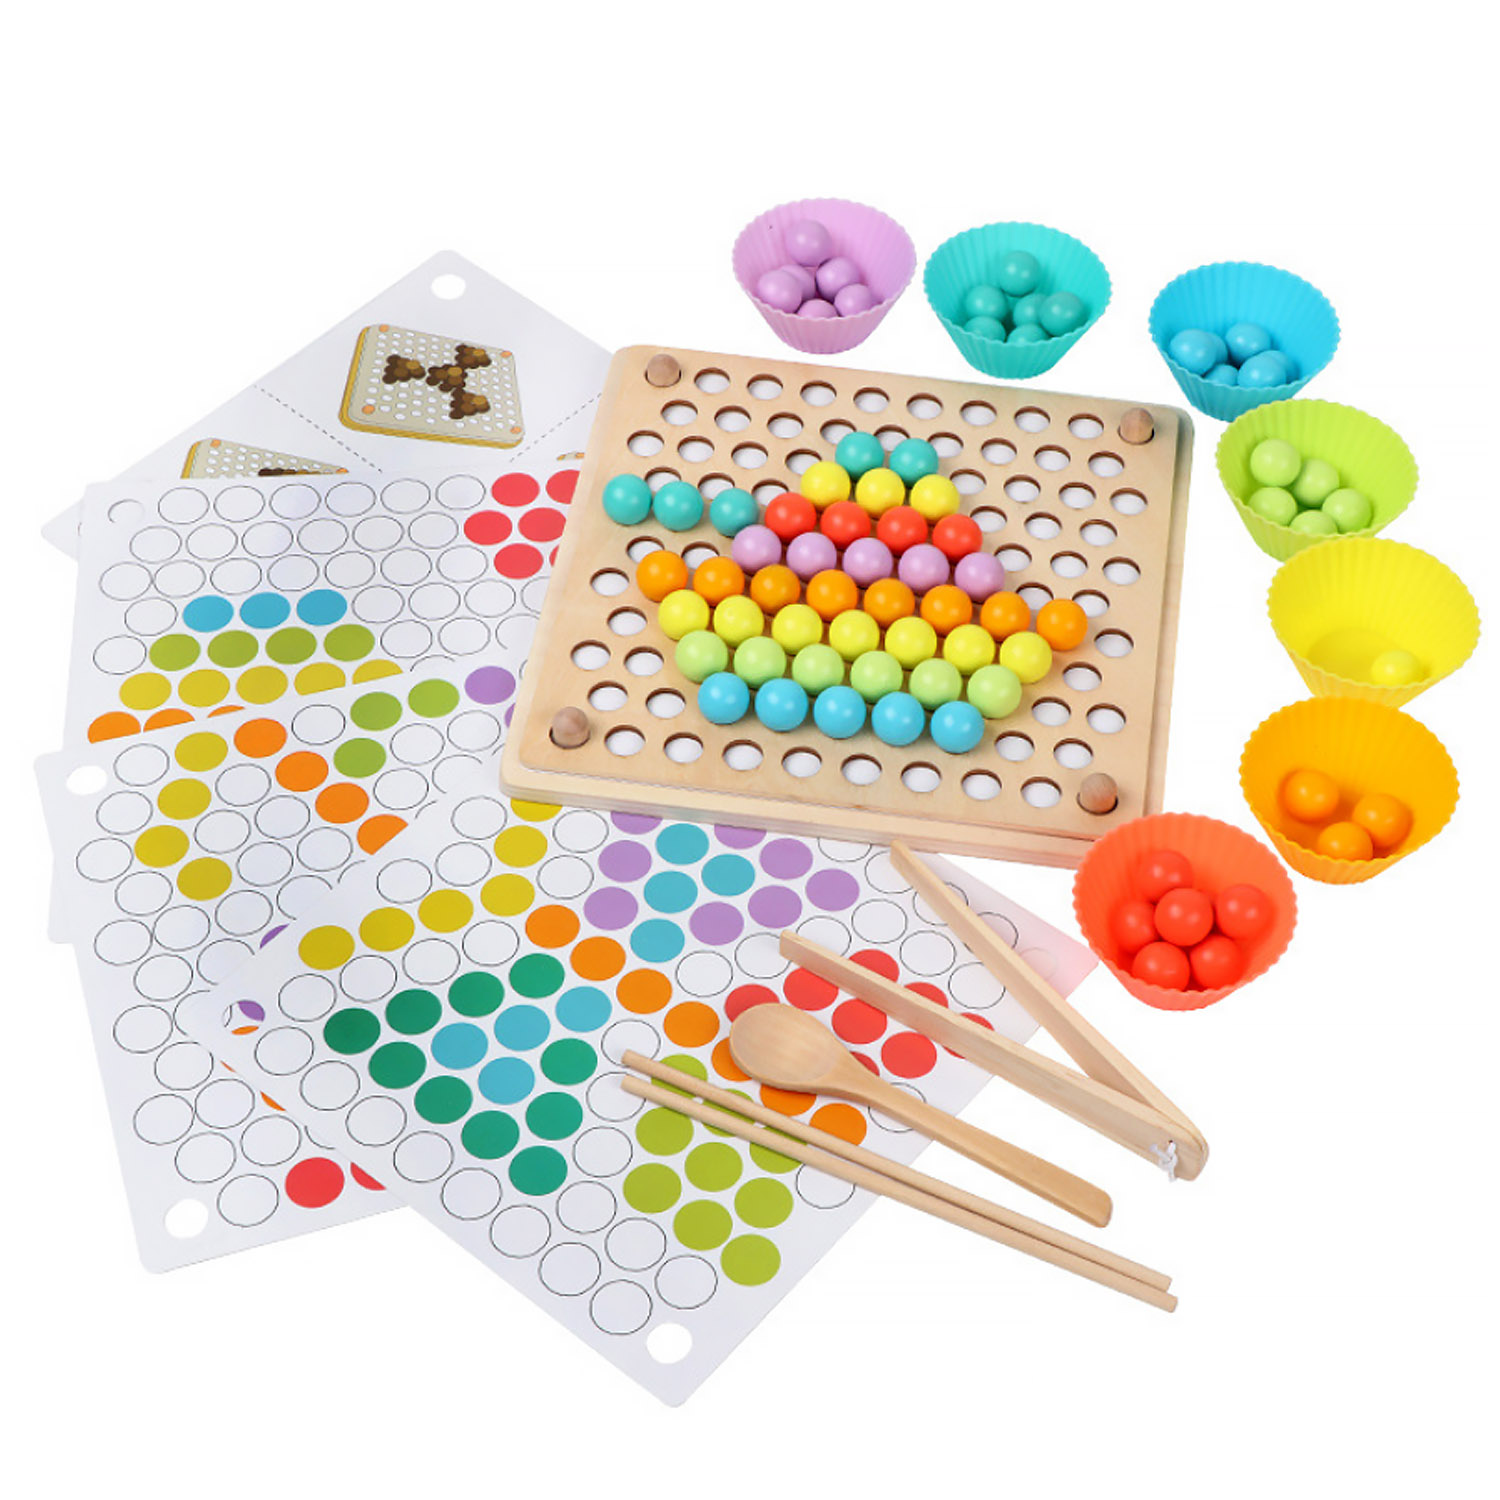 Kids Montessori Wooden Toys Hands Brain Training Clip Beads Chopsticks Beads Toys Early Educational Puzzle Board Math Game Toys image